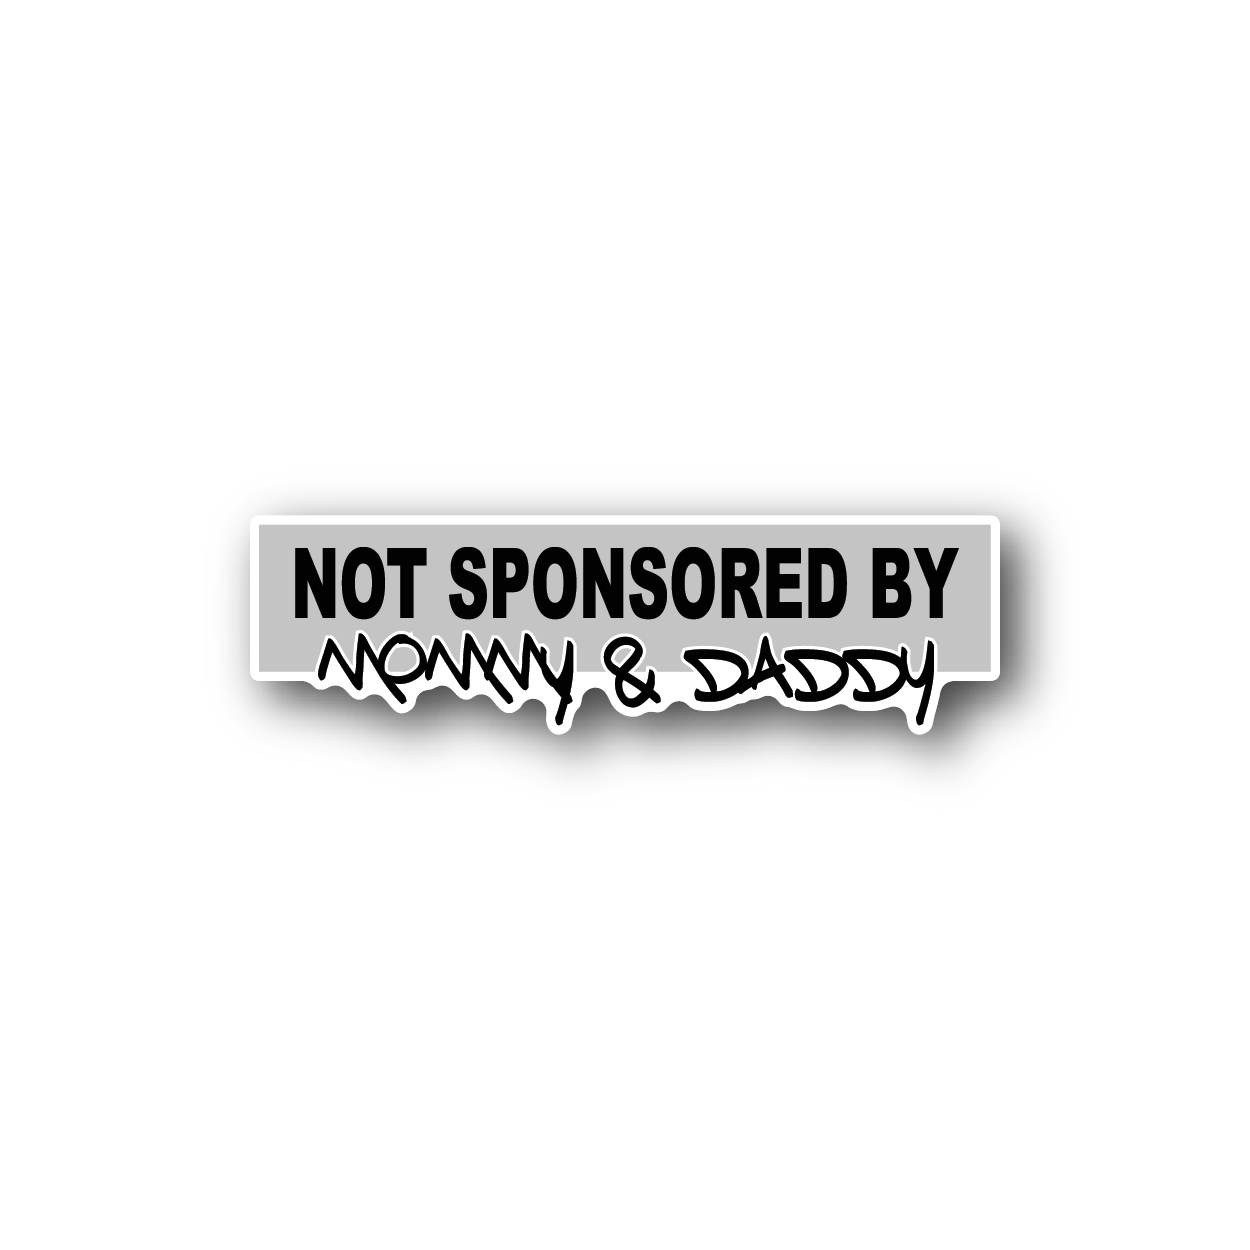 Not sponsored by mommy daddy racing sticker vinyl sticker